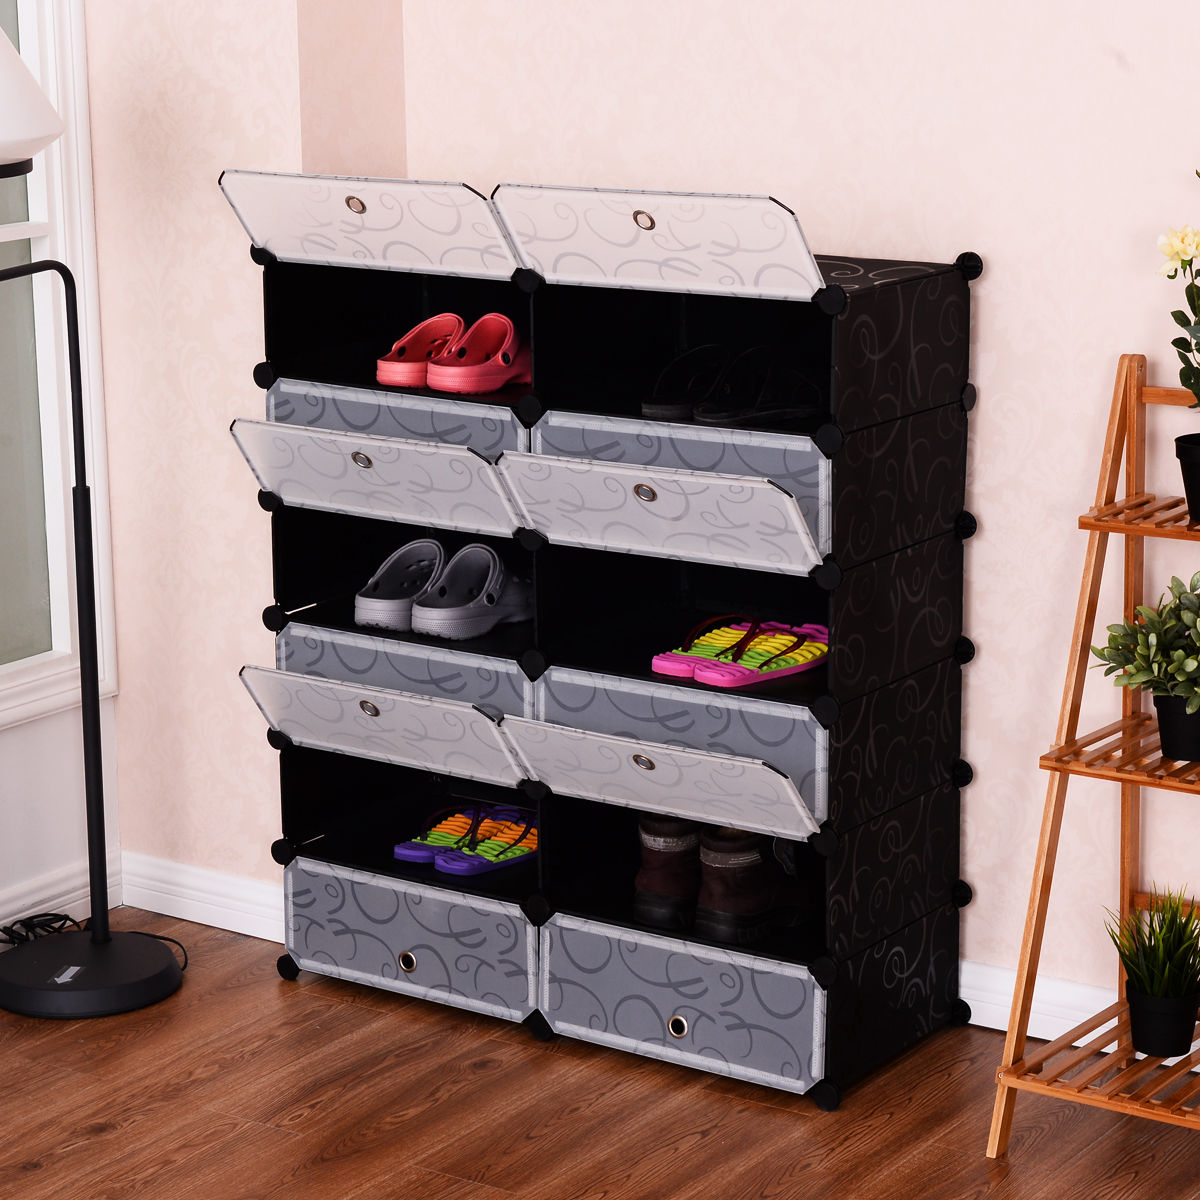 Storage Closet Us 56 99 Giantex 12 Cubic Portable Shoe Rack Shelf Modern Waterproof Shoes Cabinet Storage Closet Shoe Organizer Home Furniture Hw54796 In Shoe